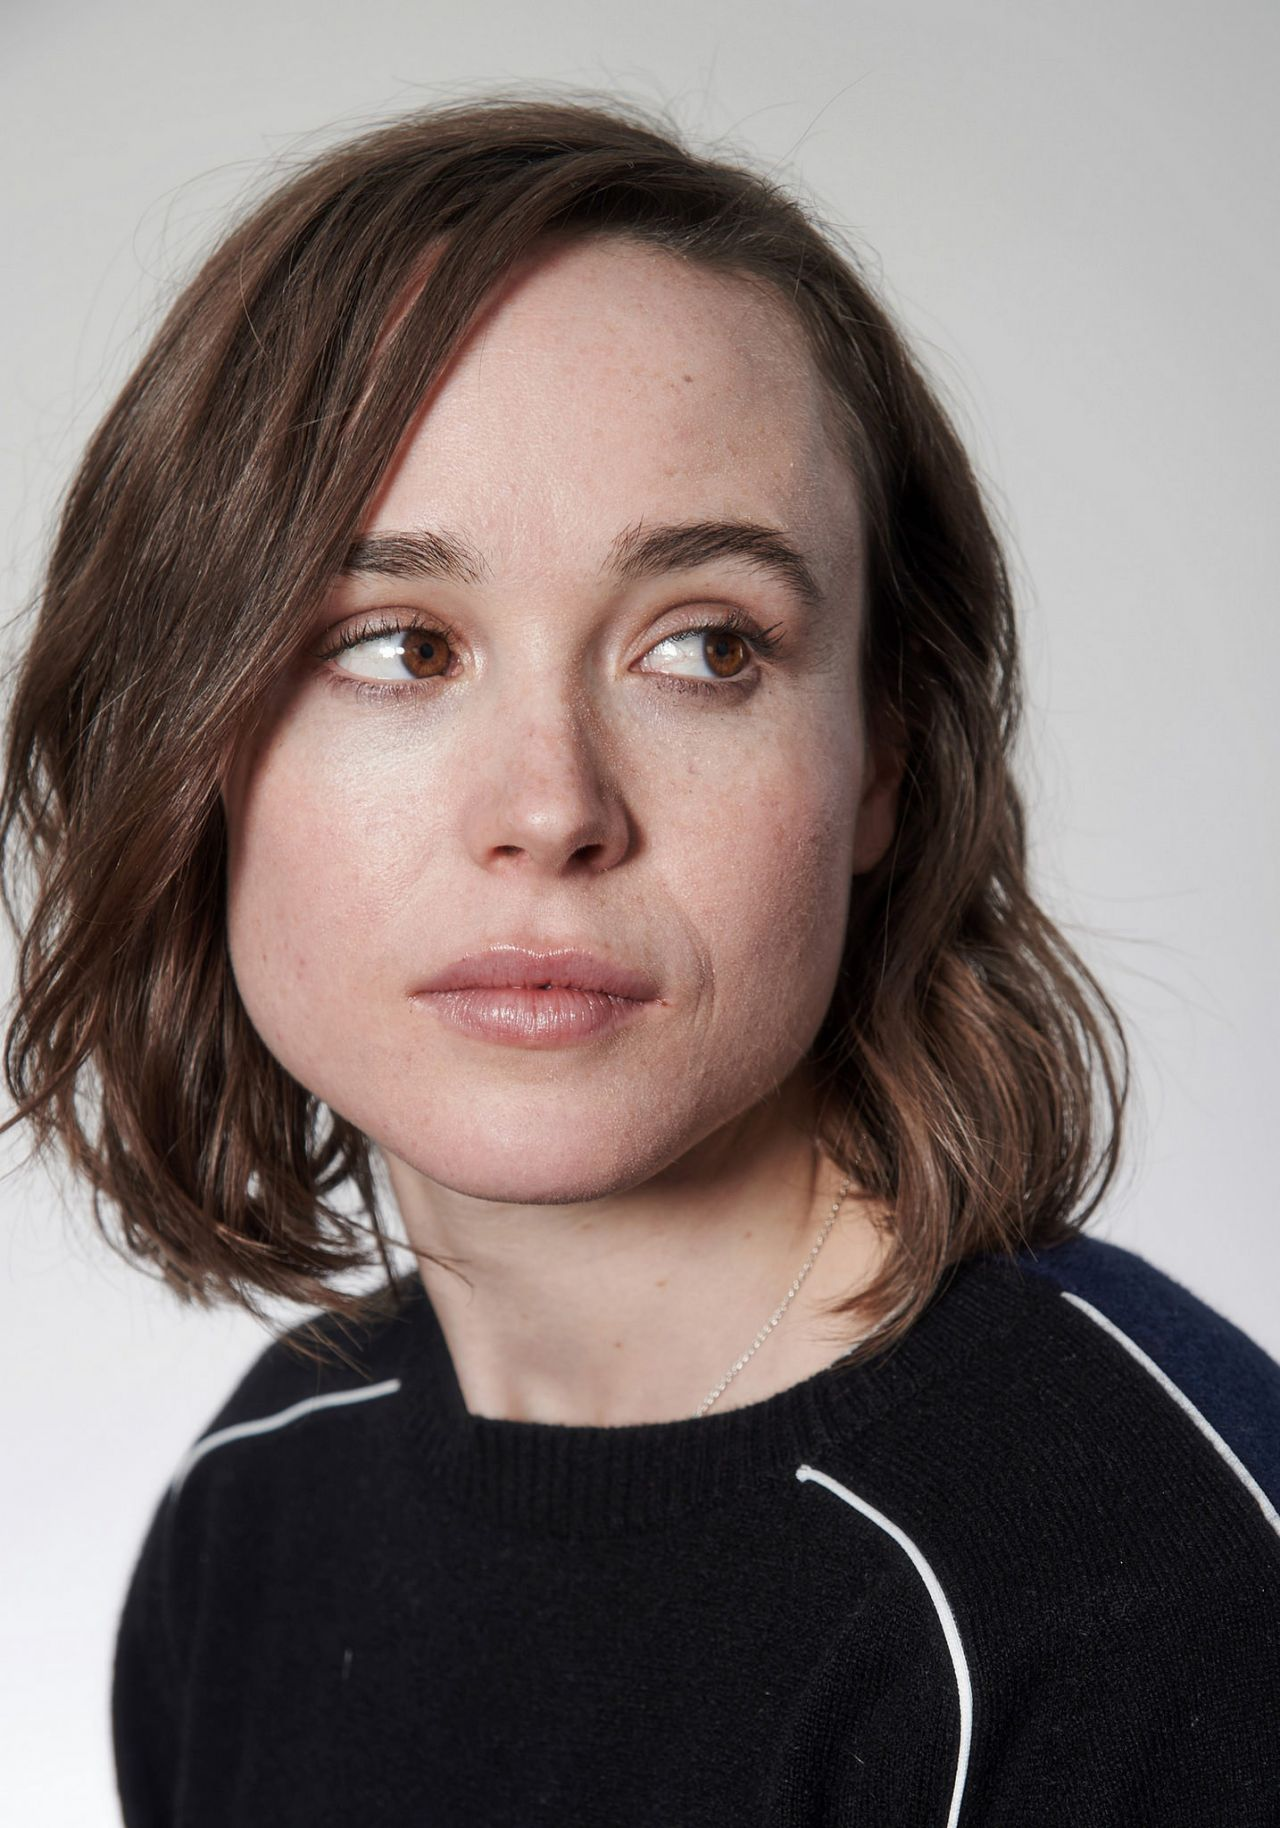 how tall is ellen page